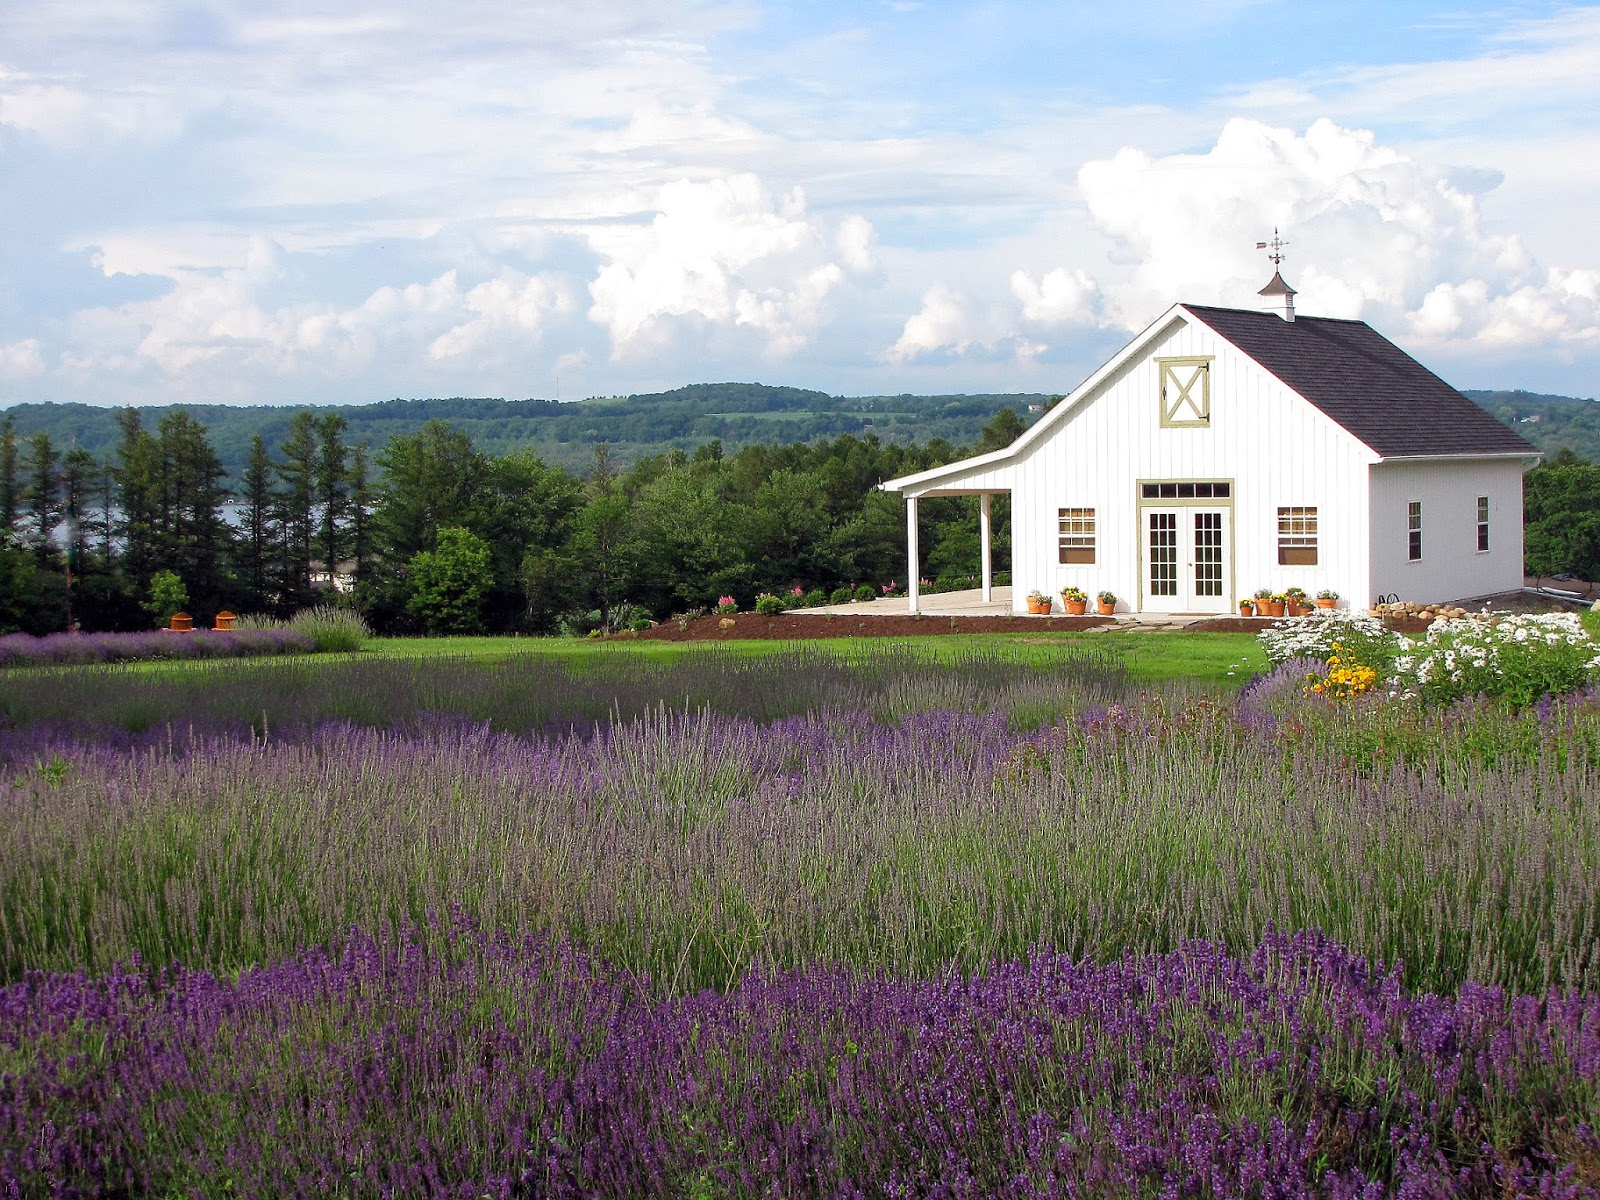 Lockwood Lavender Farm in Skaneateles  localyahoocom